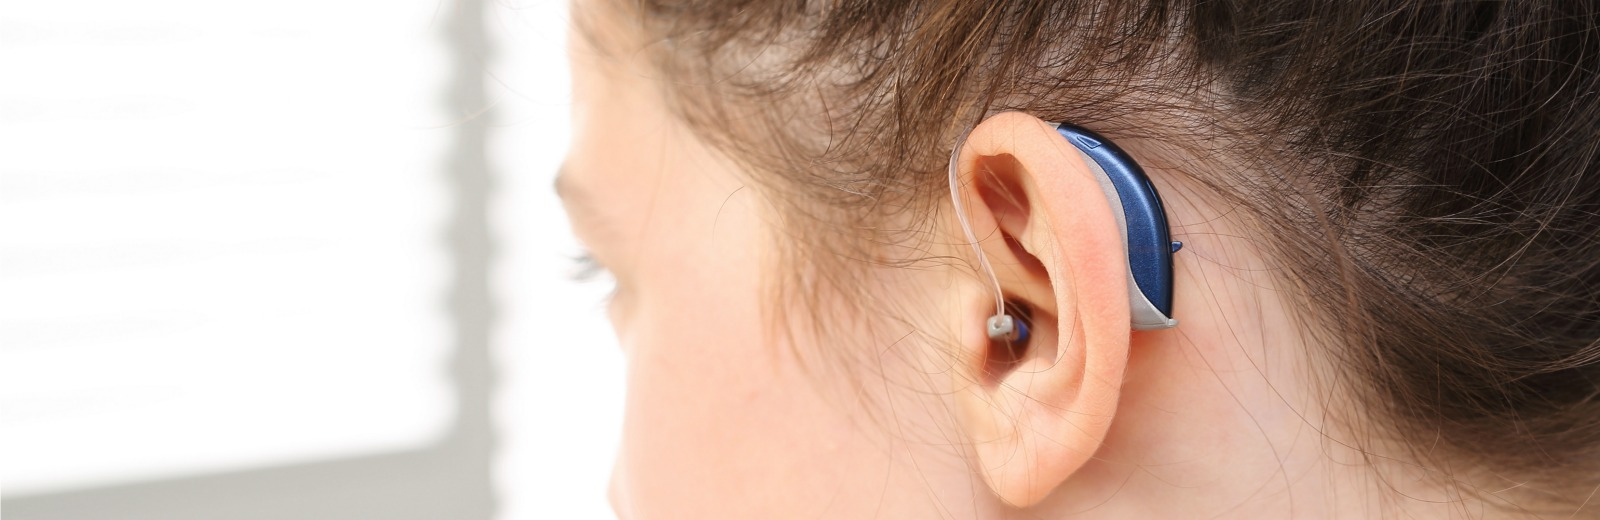 hearing loss is common